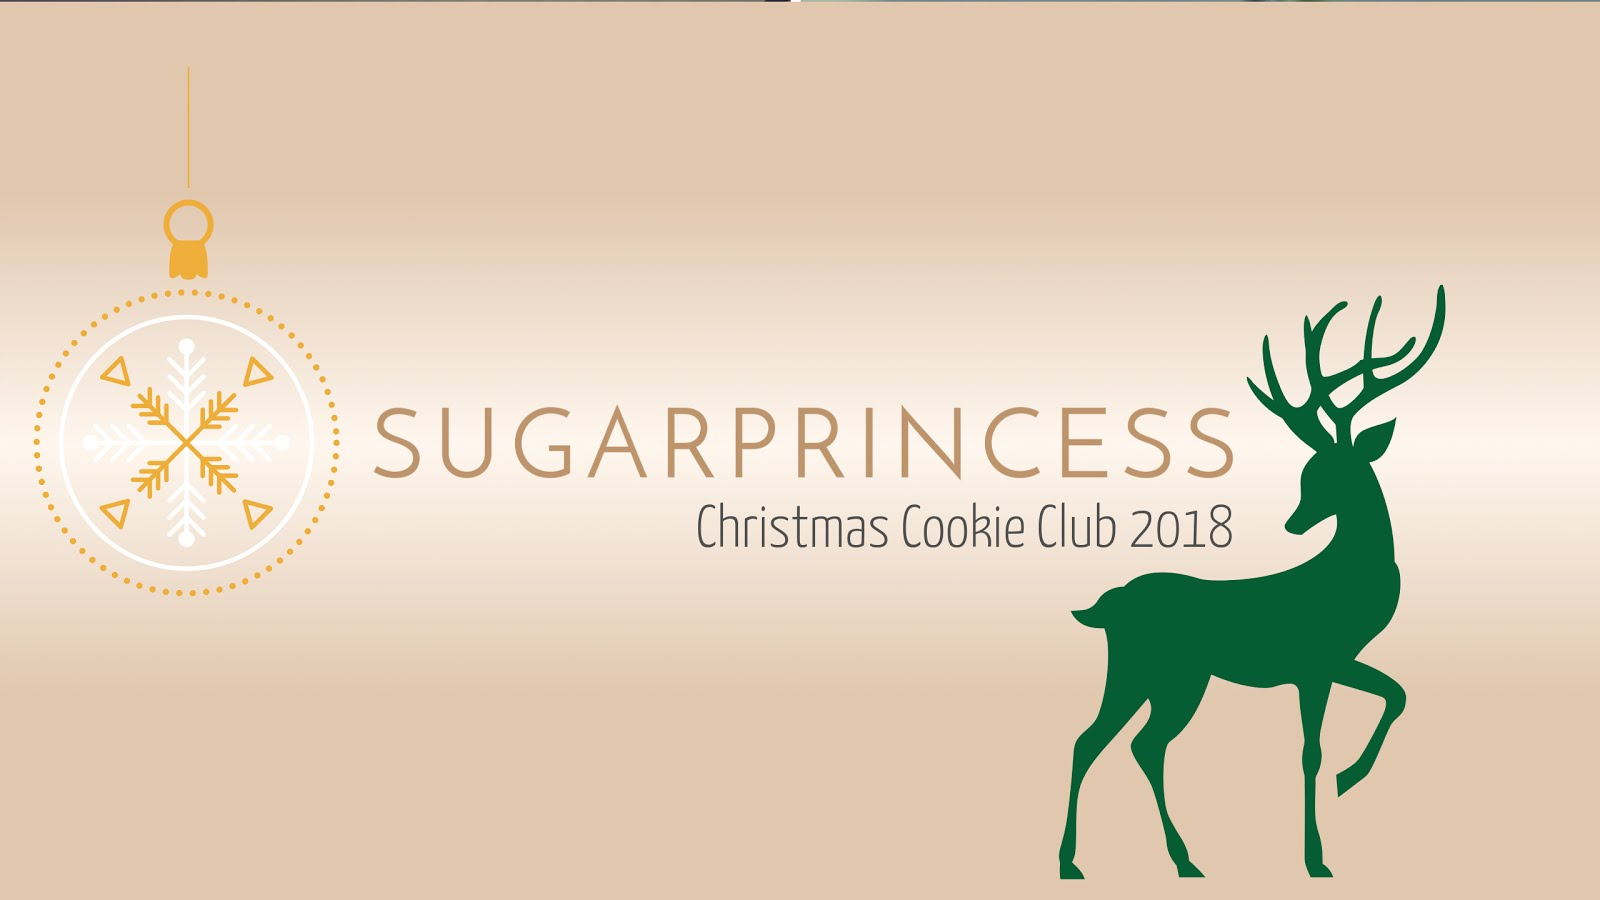 The Sugarprincess Christmas Cookie Club 2018